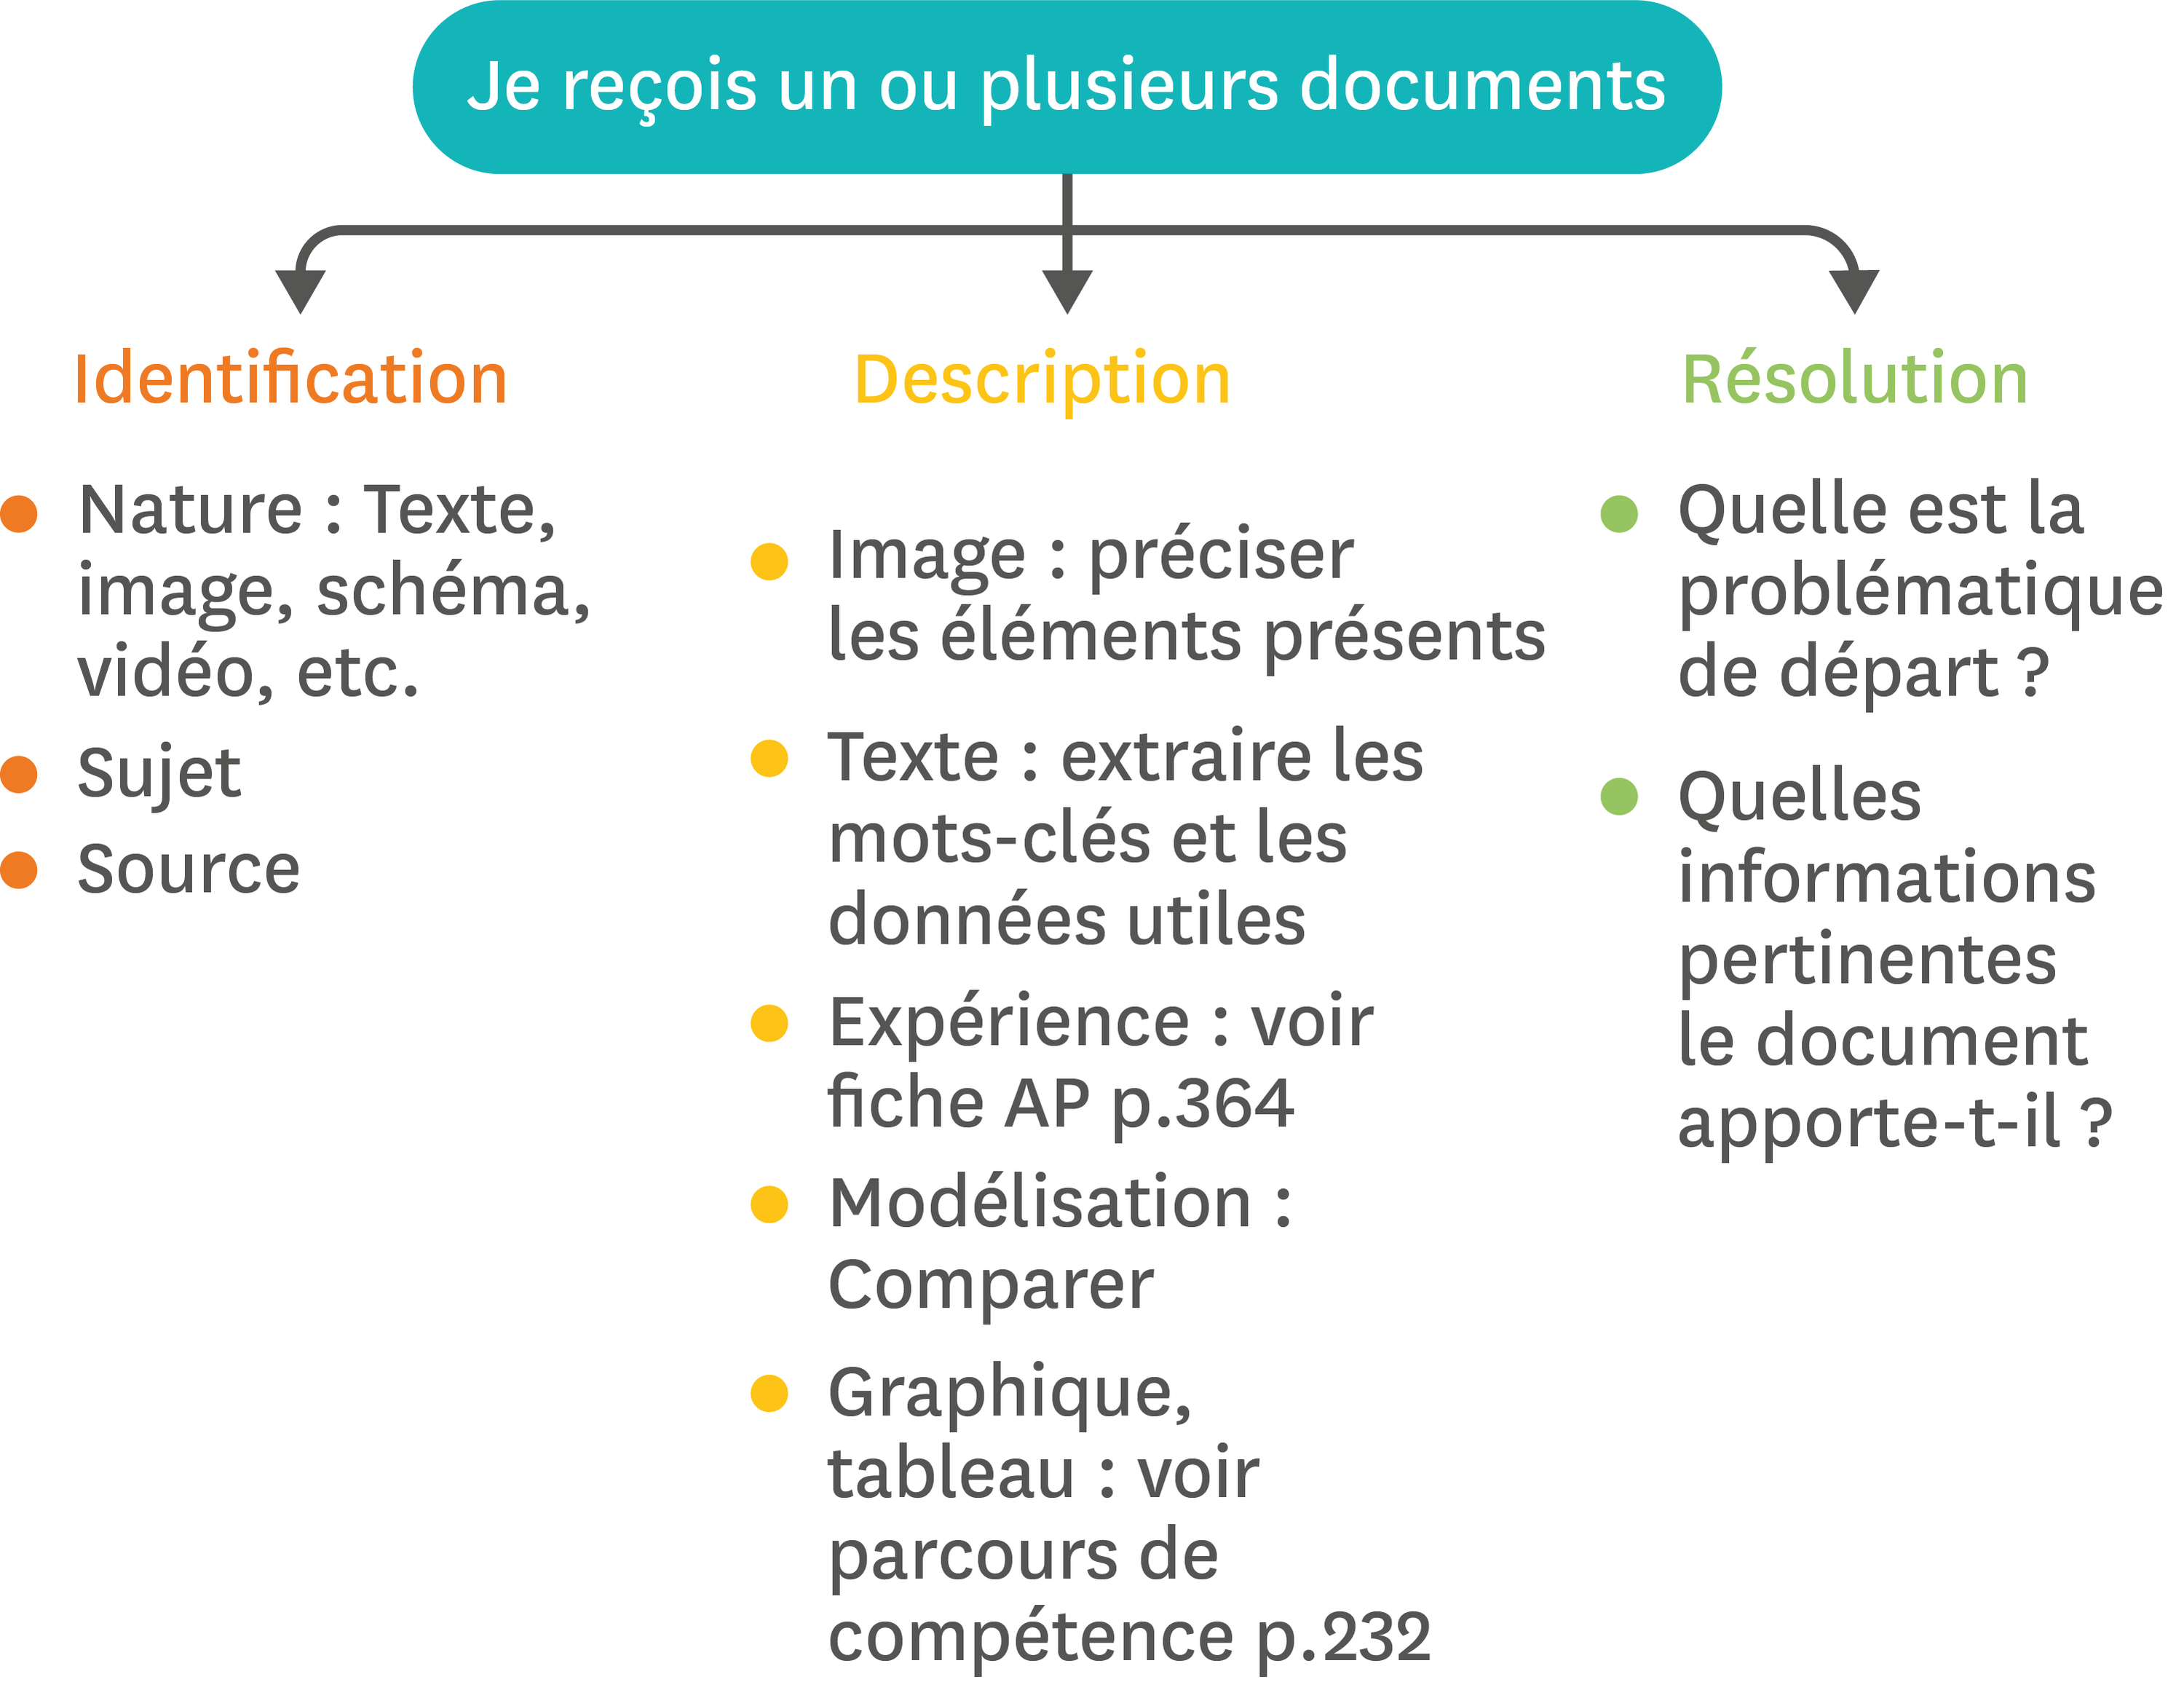 L'exploitation de documents.